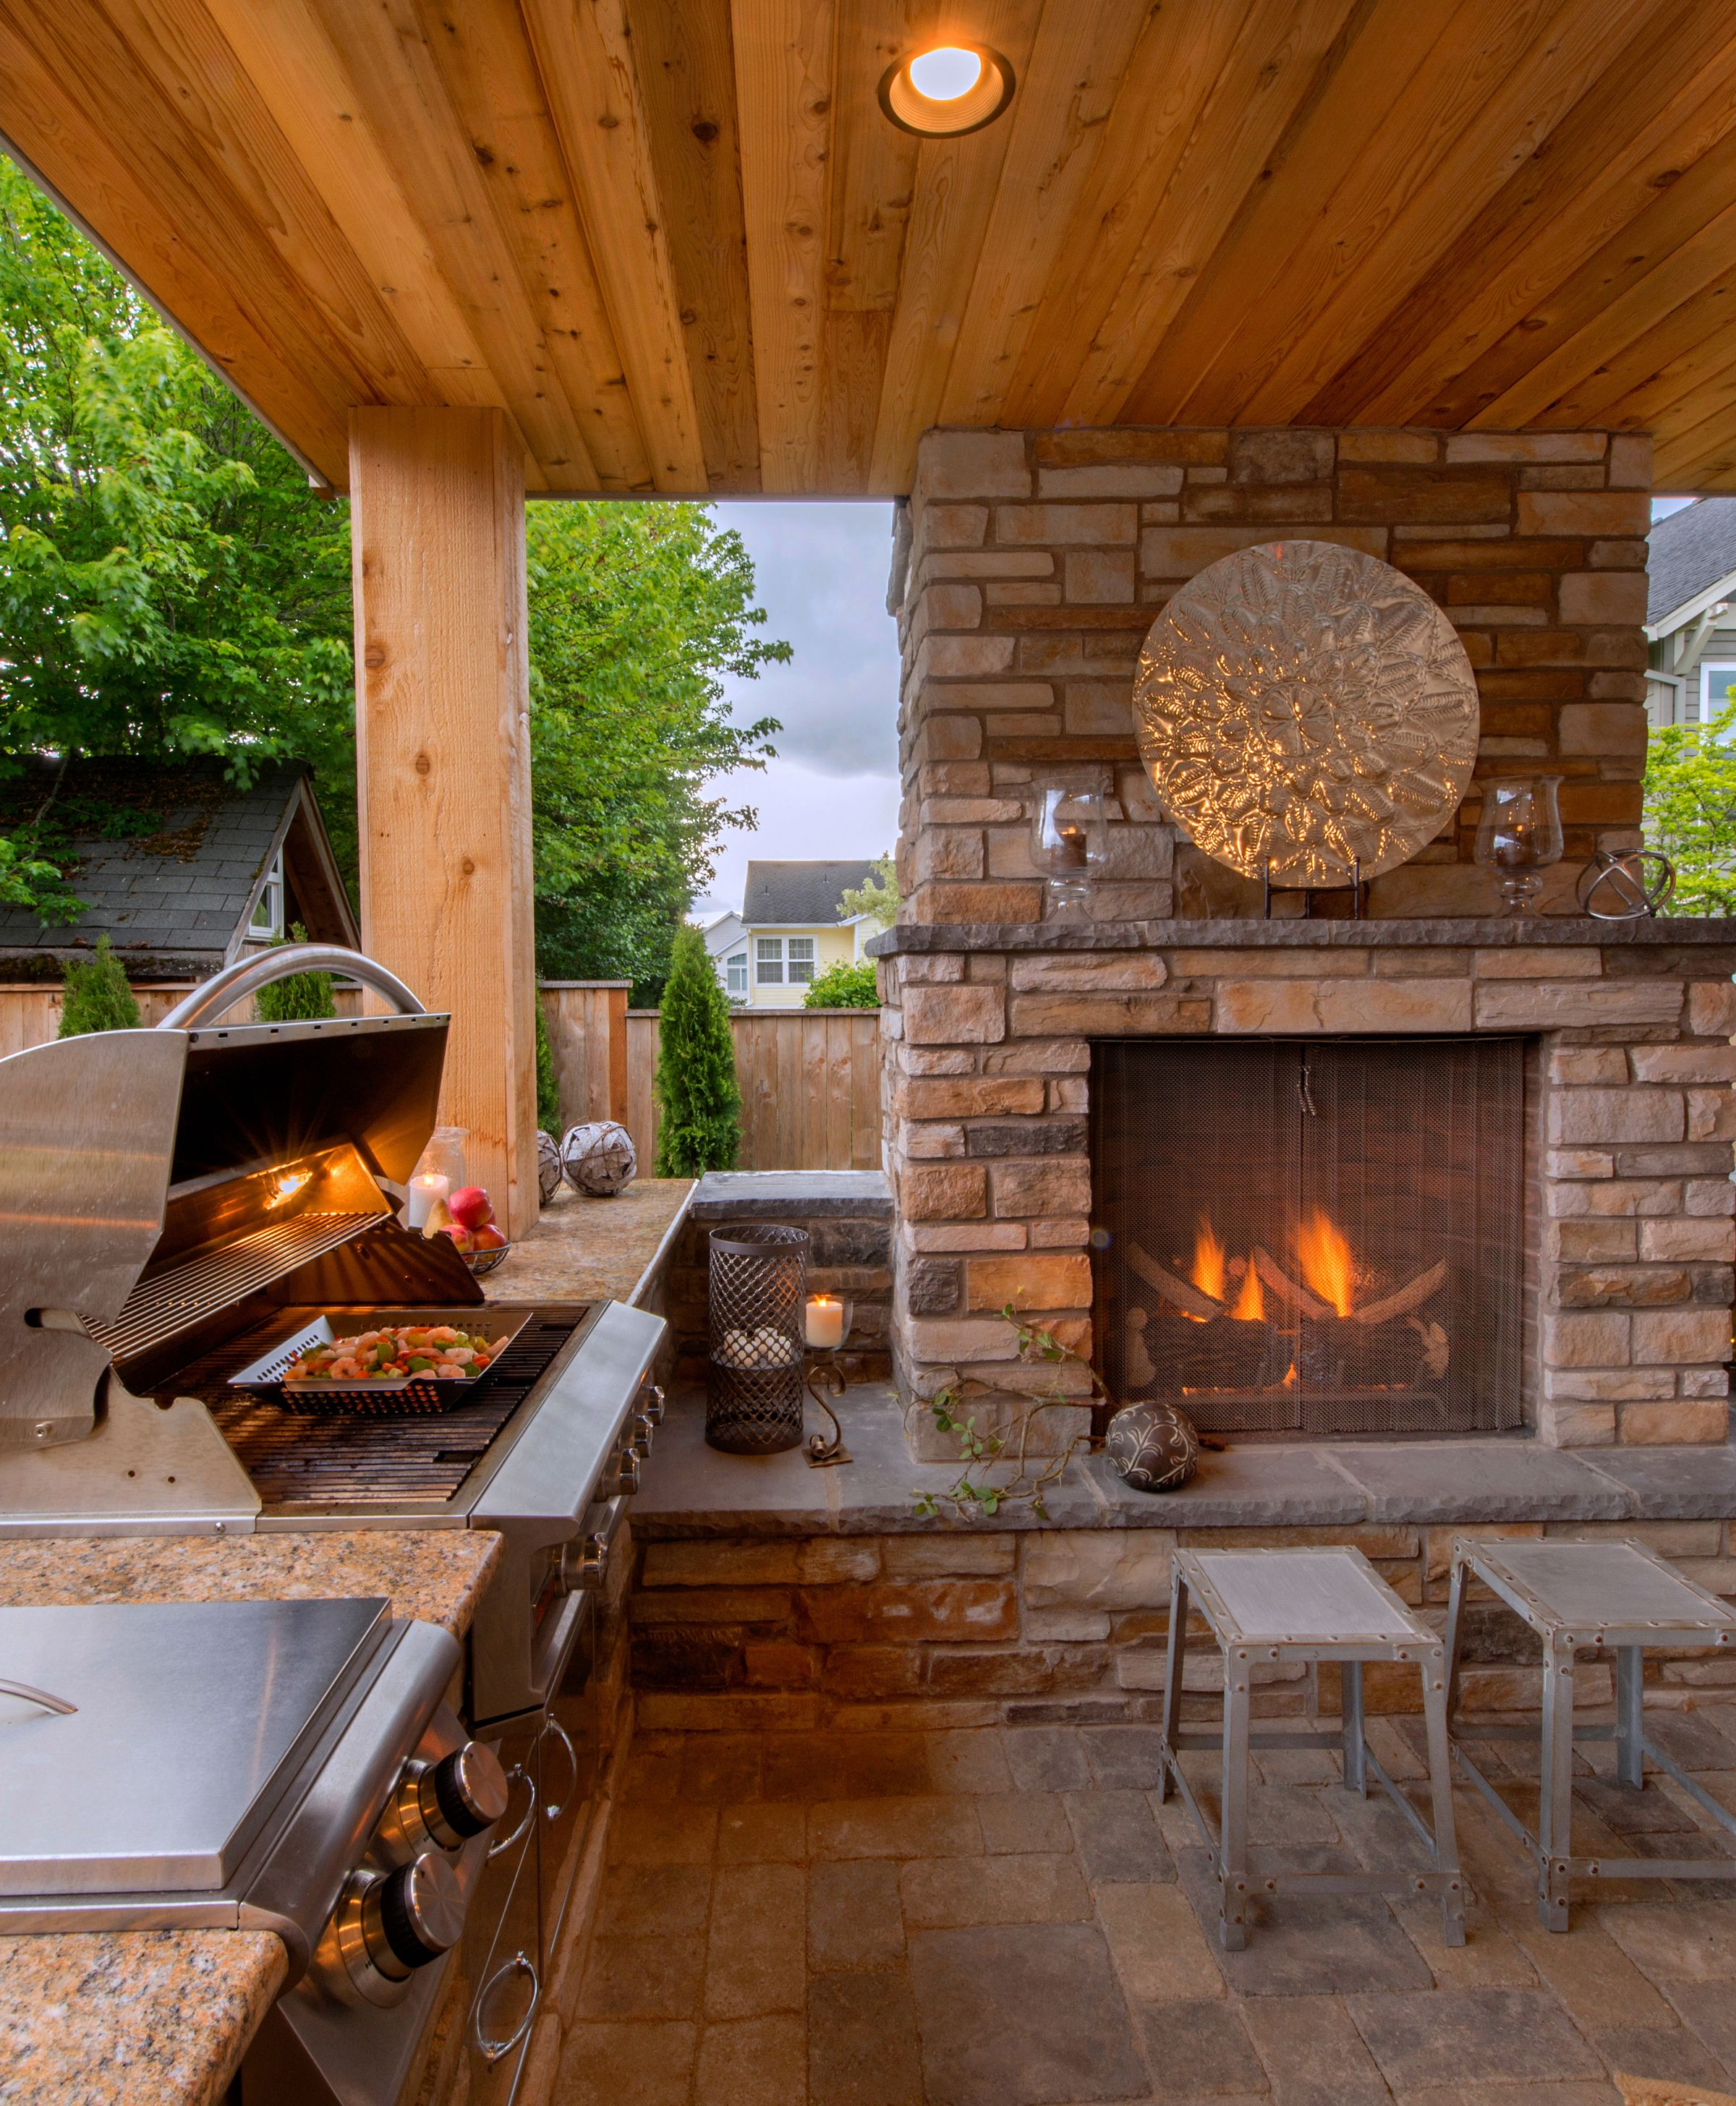 Outdoor Kitchen Wood Countertops: Cozy Outdoor Kitchen And Fireplace Http://www